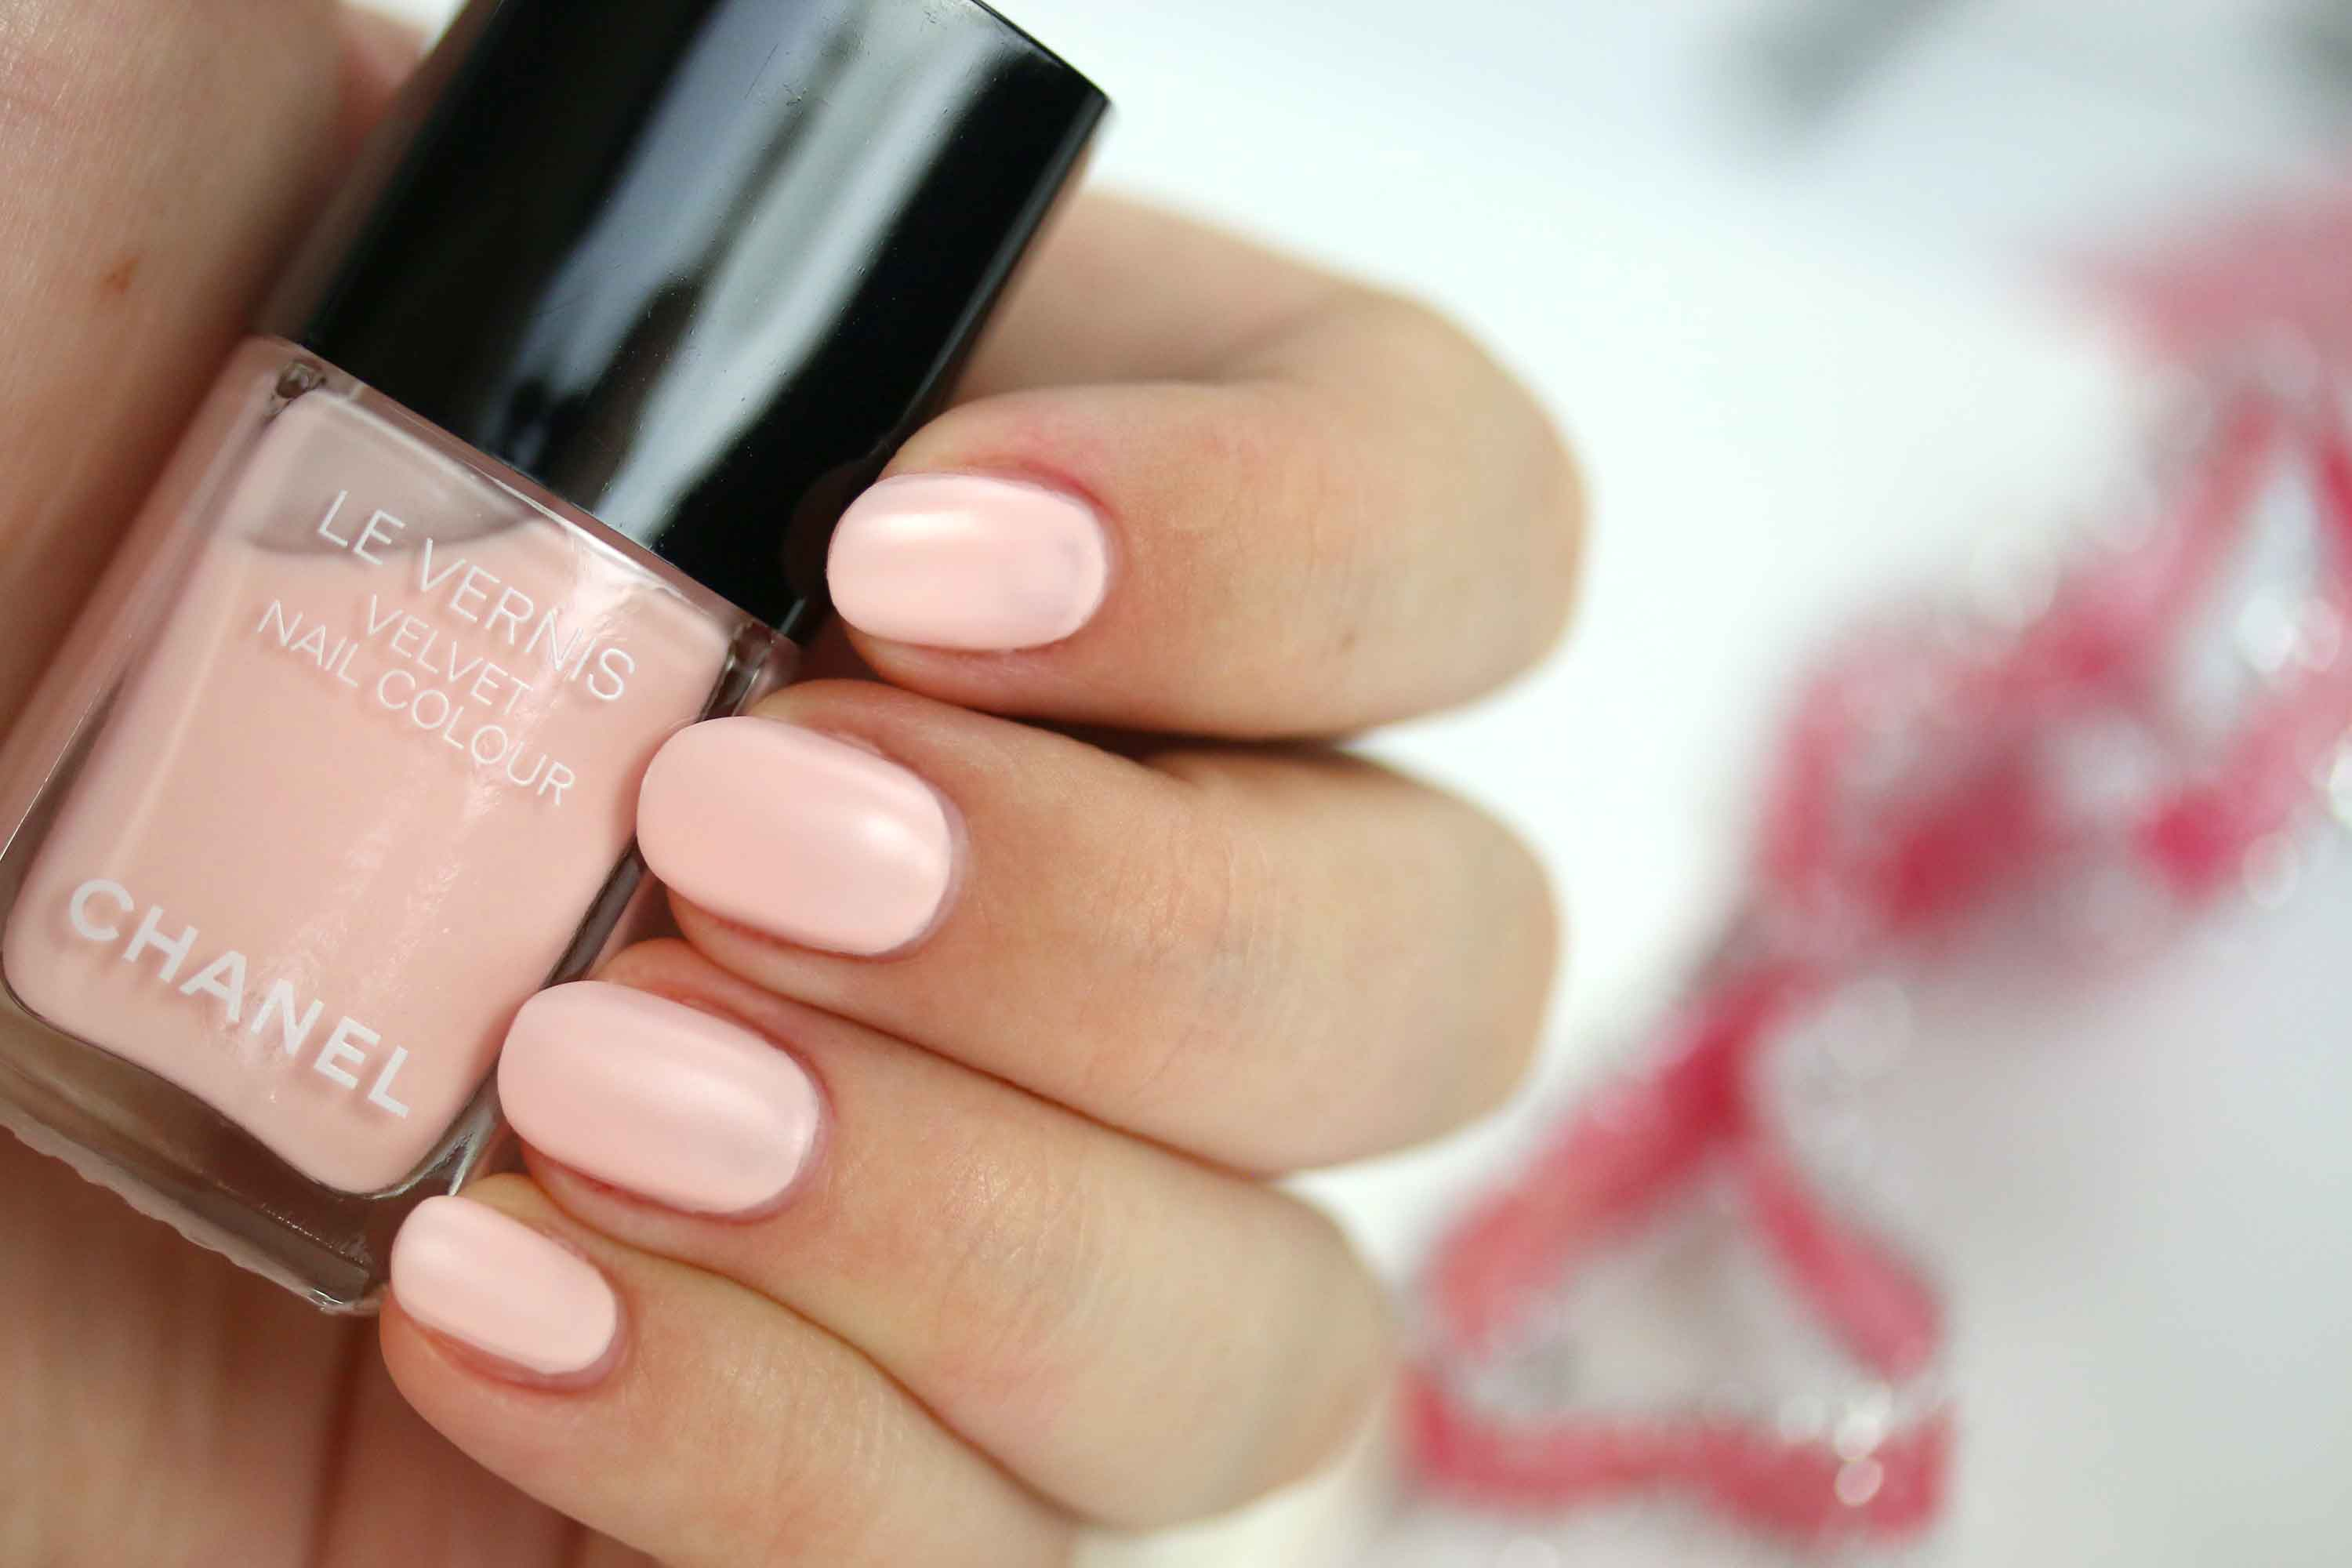 chanel-542-pink-rubber